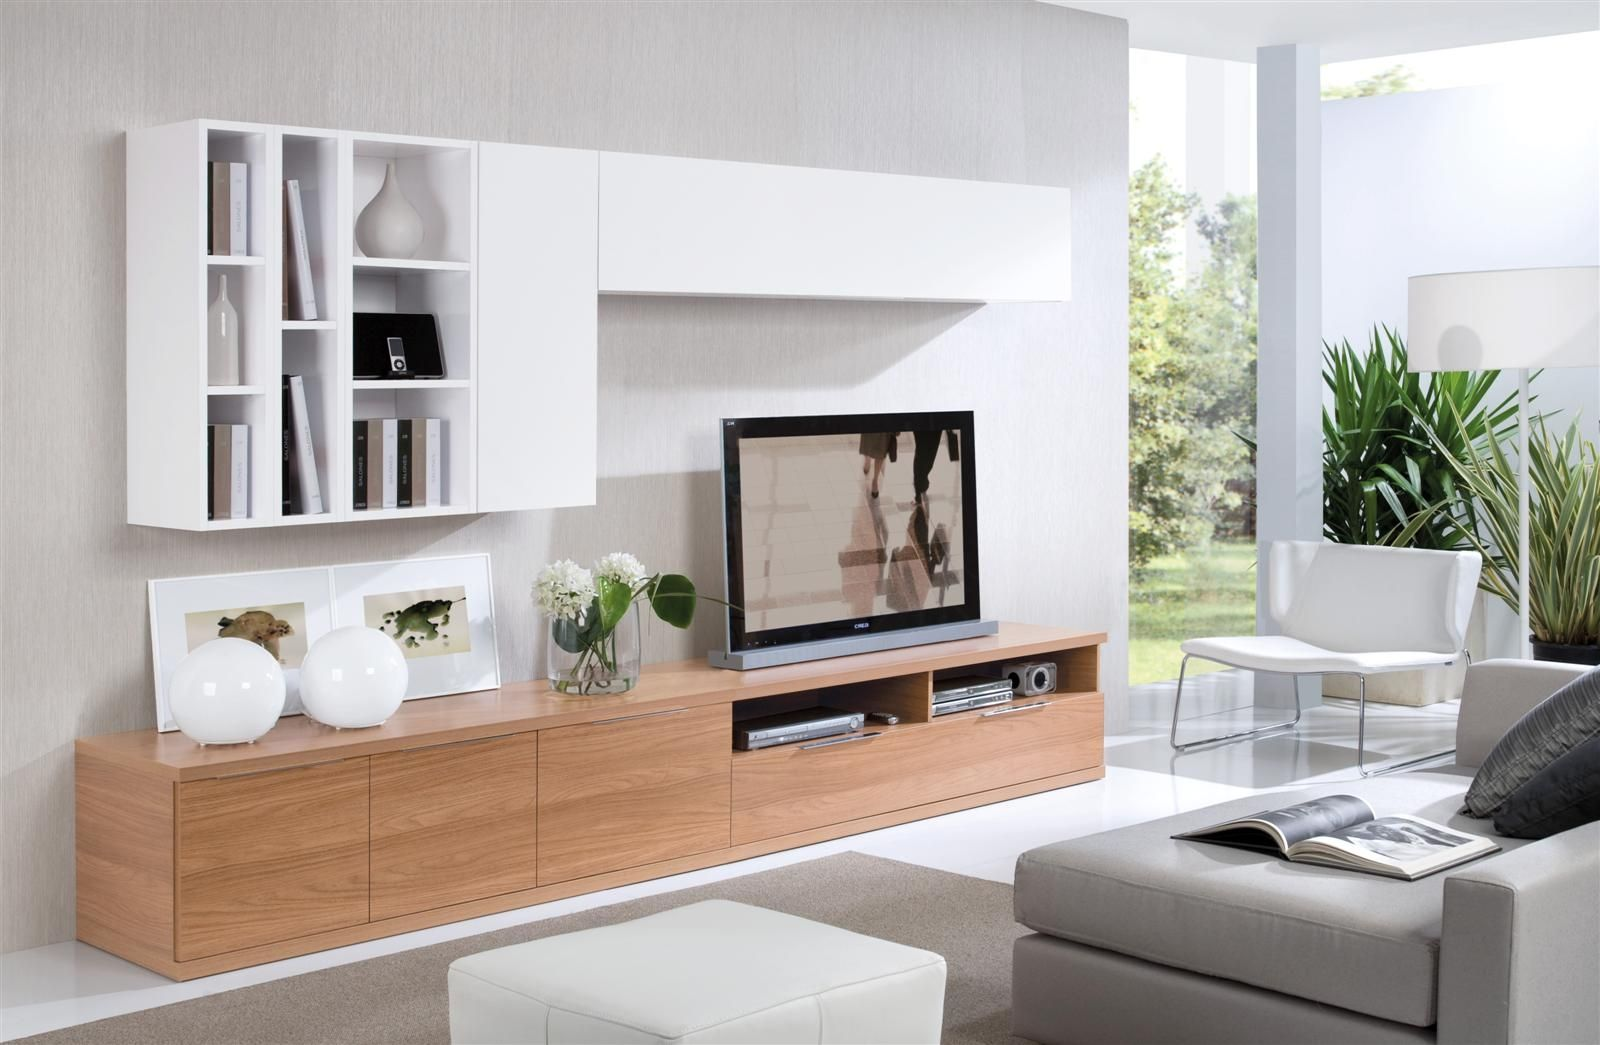 Tv Unit Designs For Living Room Sigue Nuestras Ideas Para Organizar Y Decorar Cuarto De Television